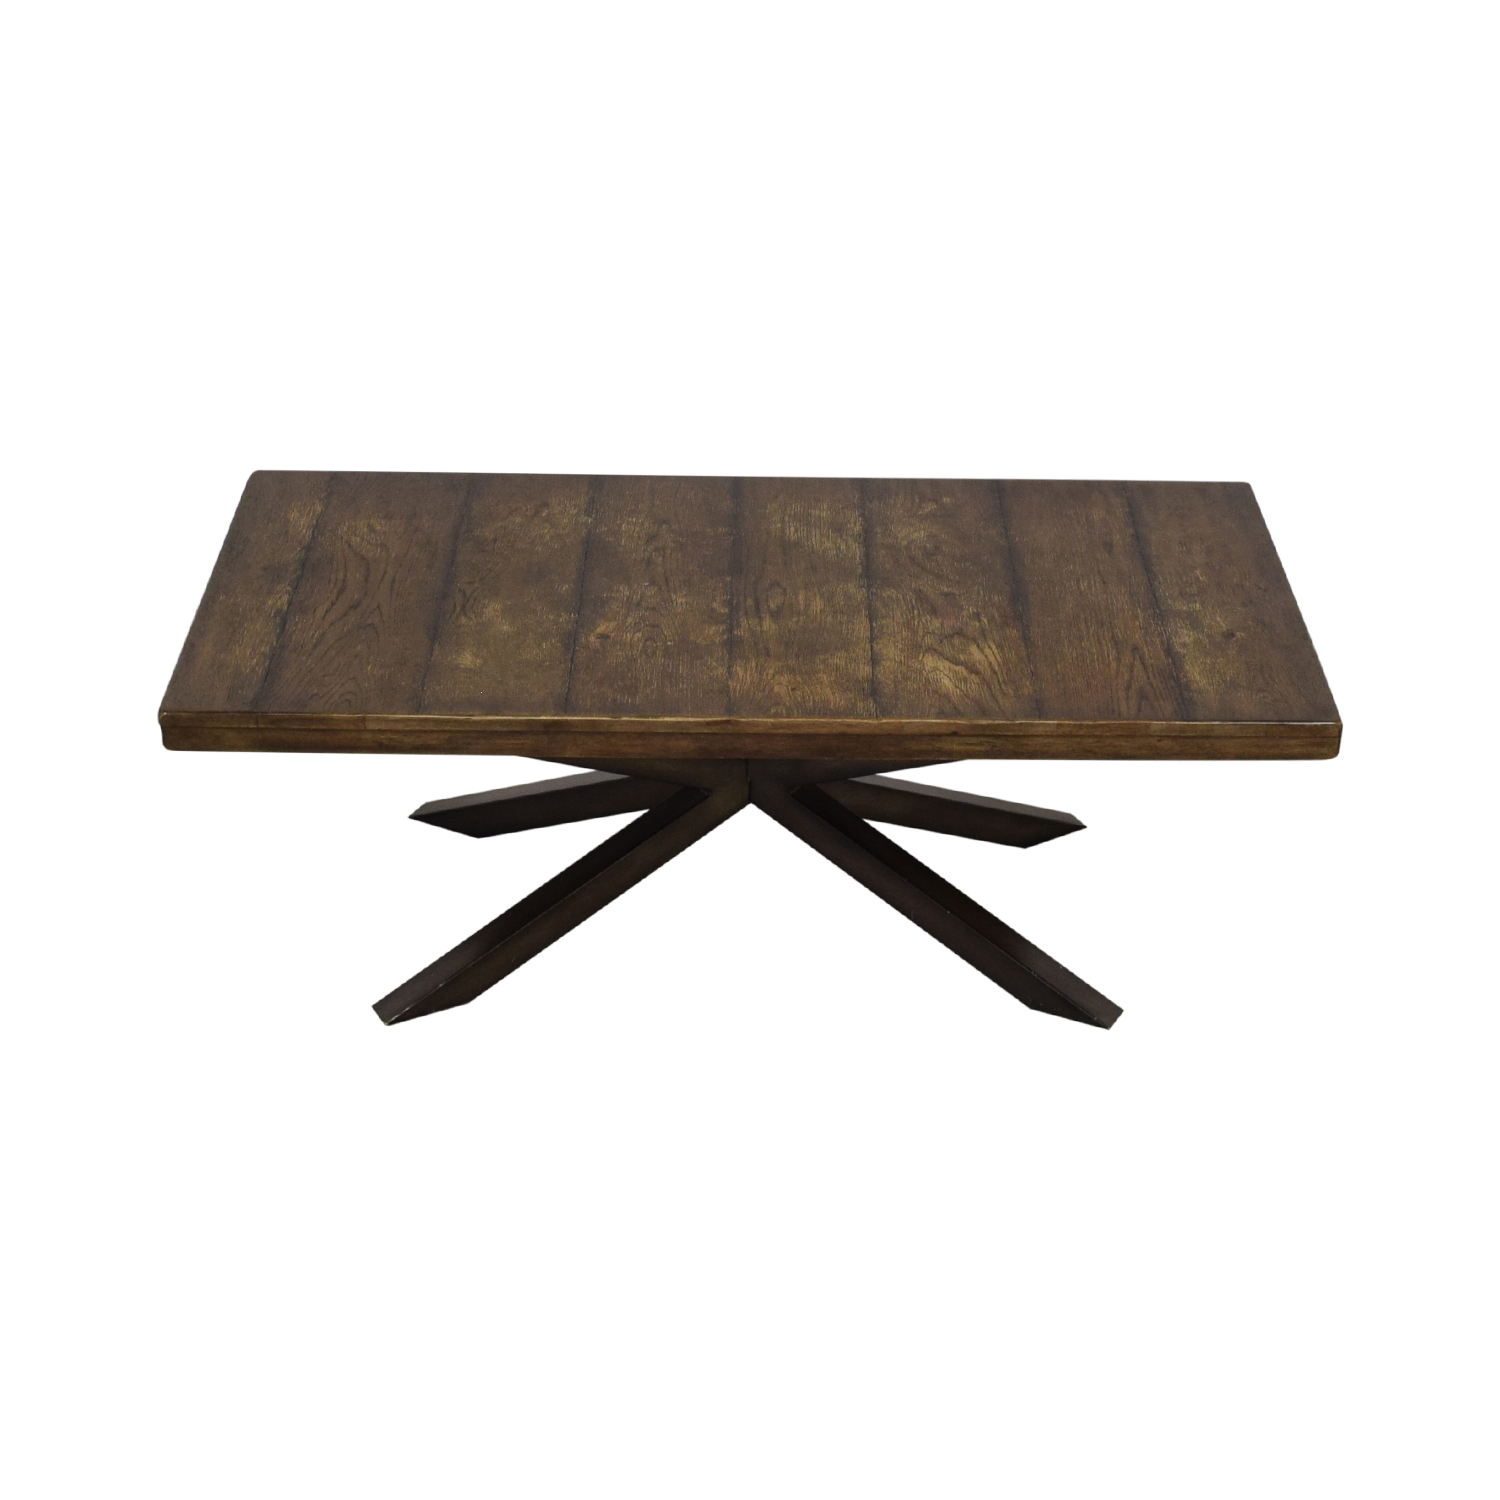 Pottery Barn Pedestal Coffee Table / Coffee Tables